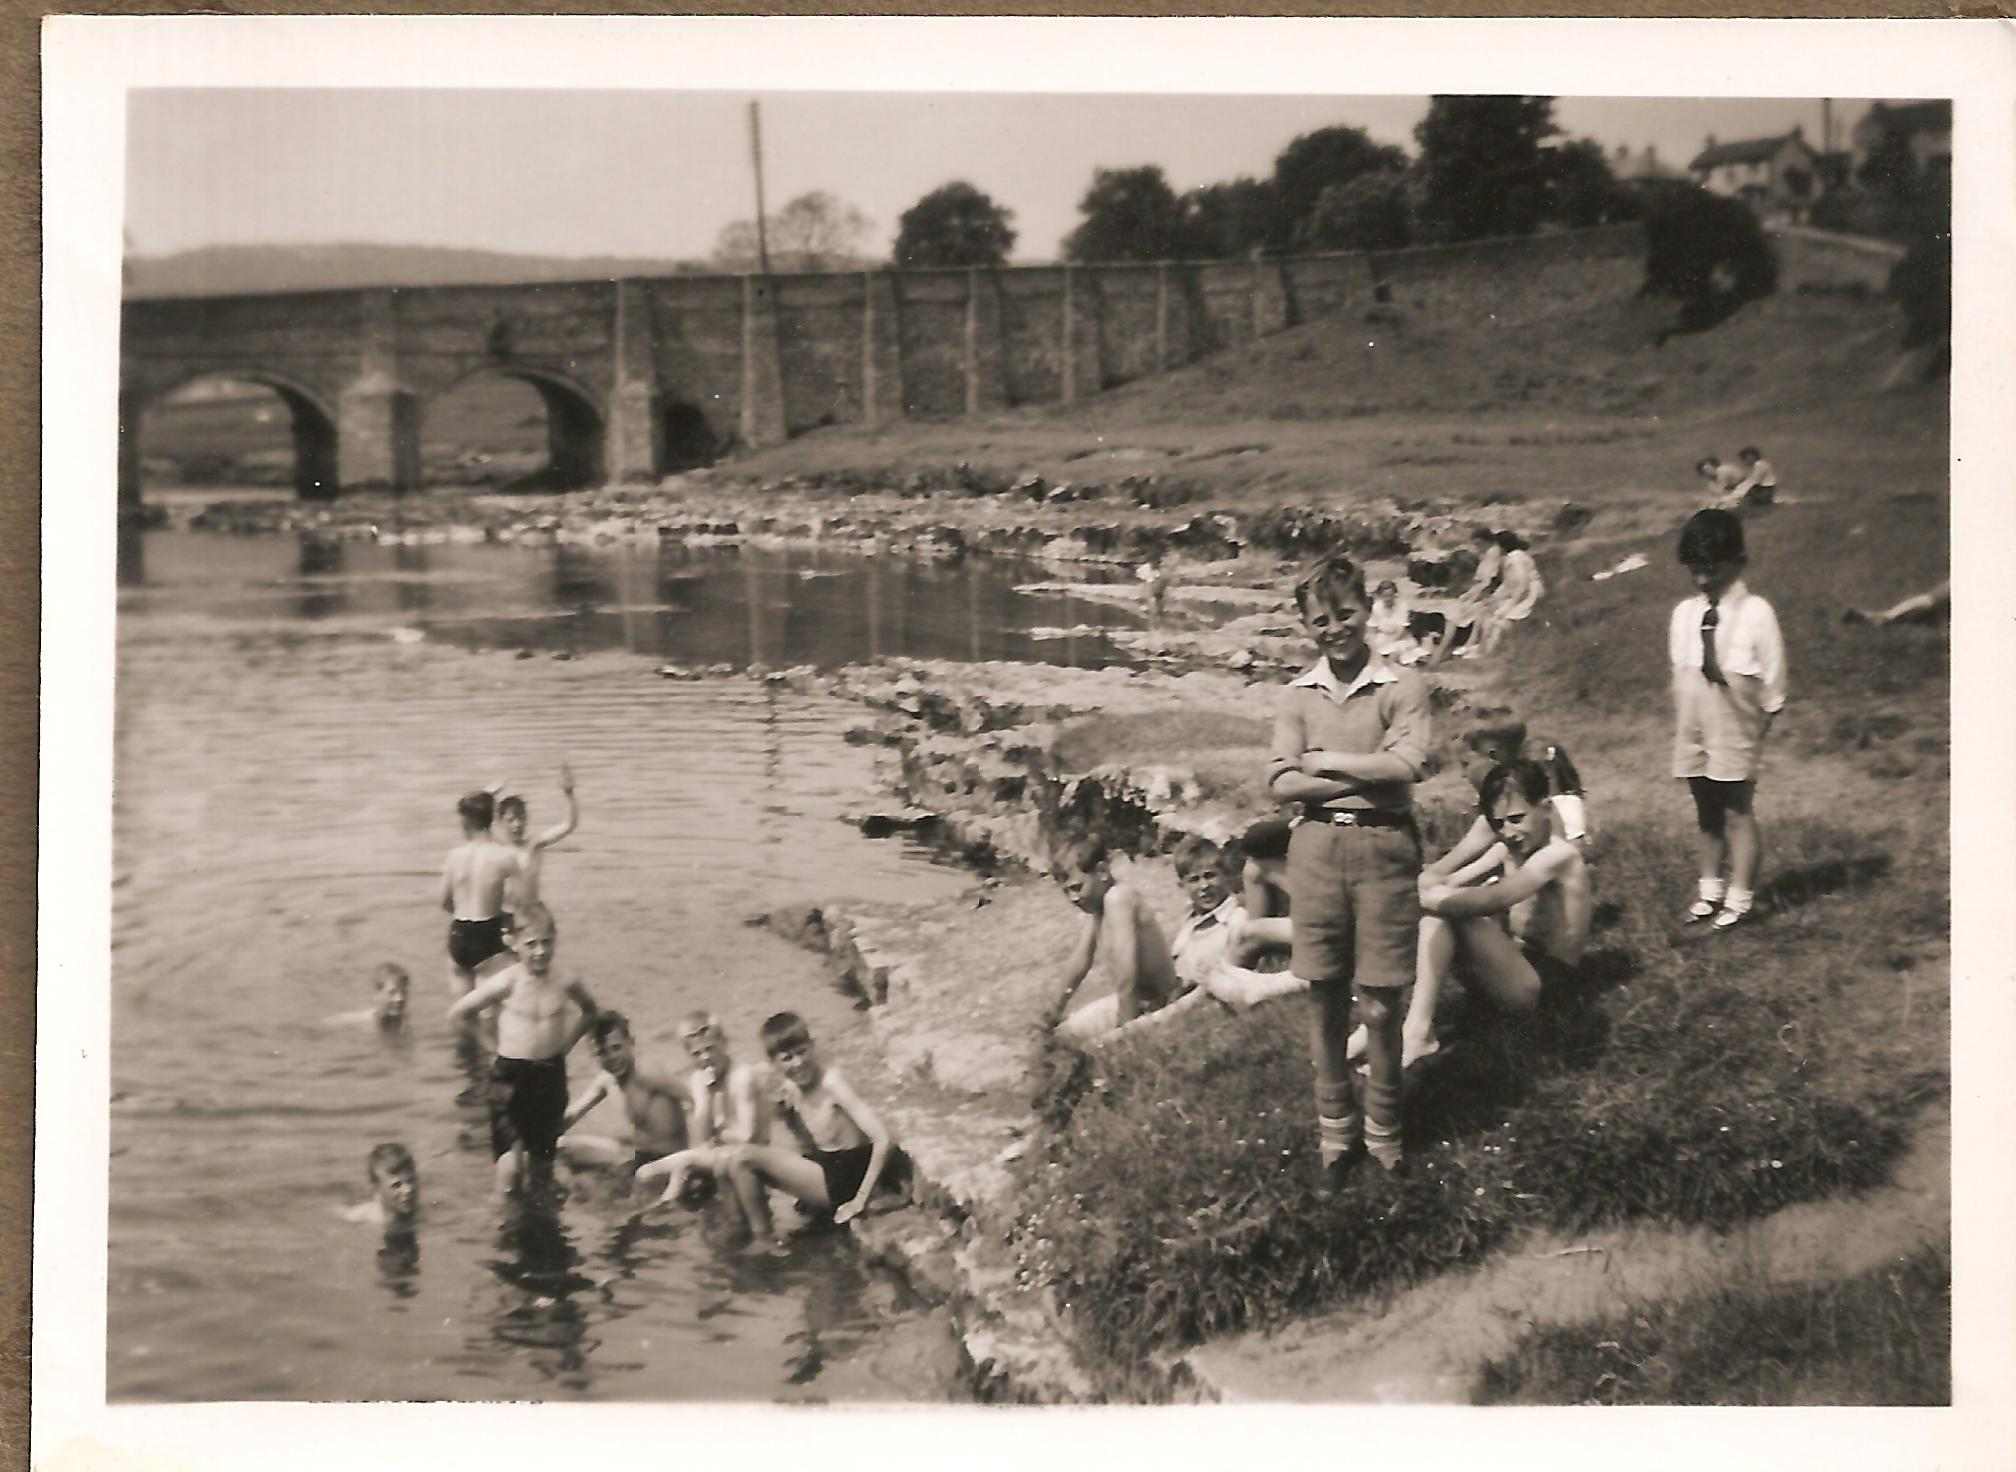 Swimming in the Wharfe